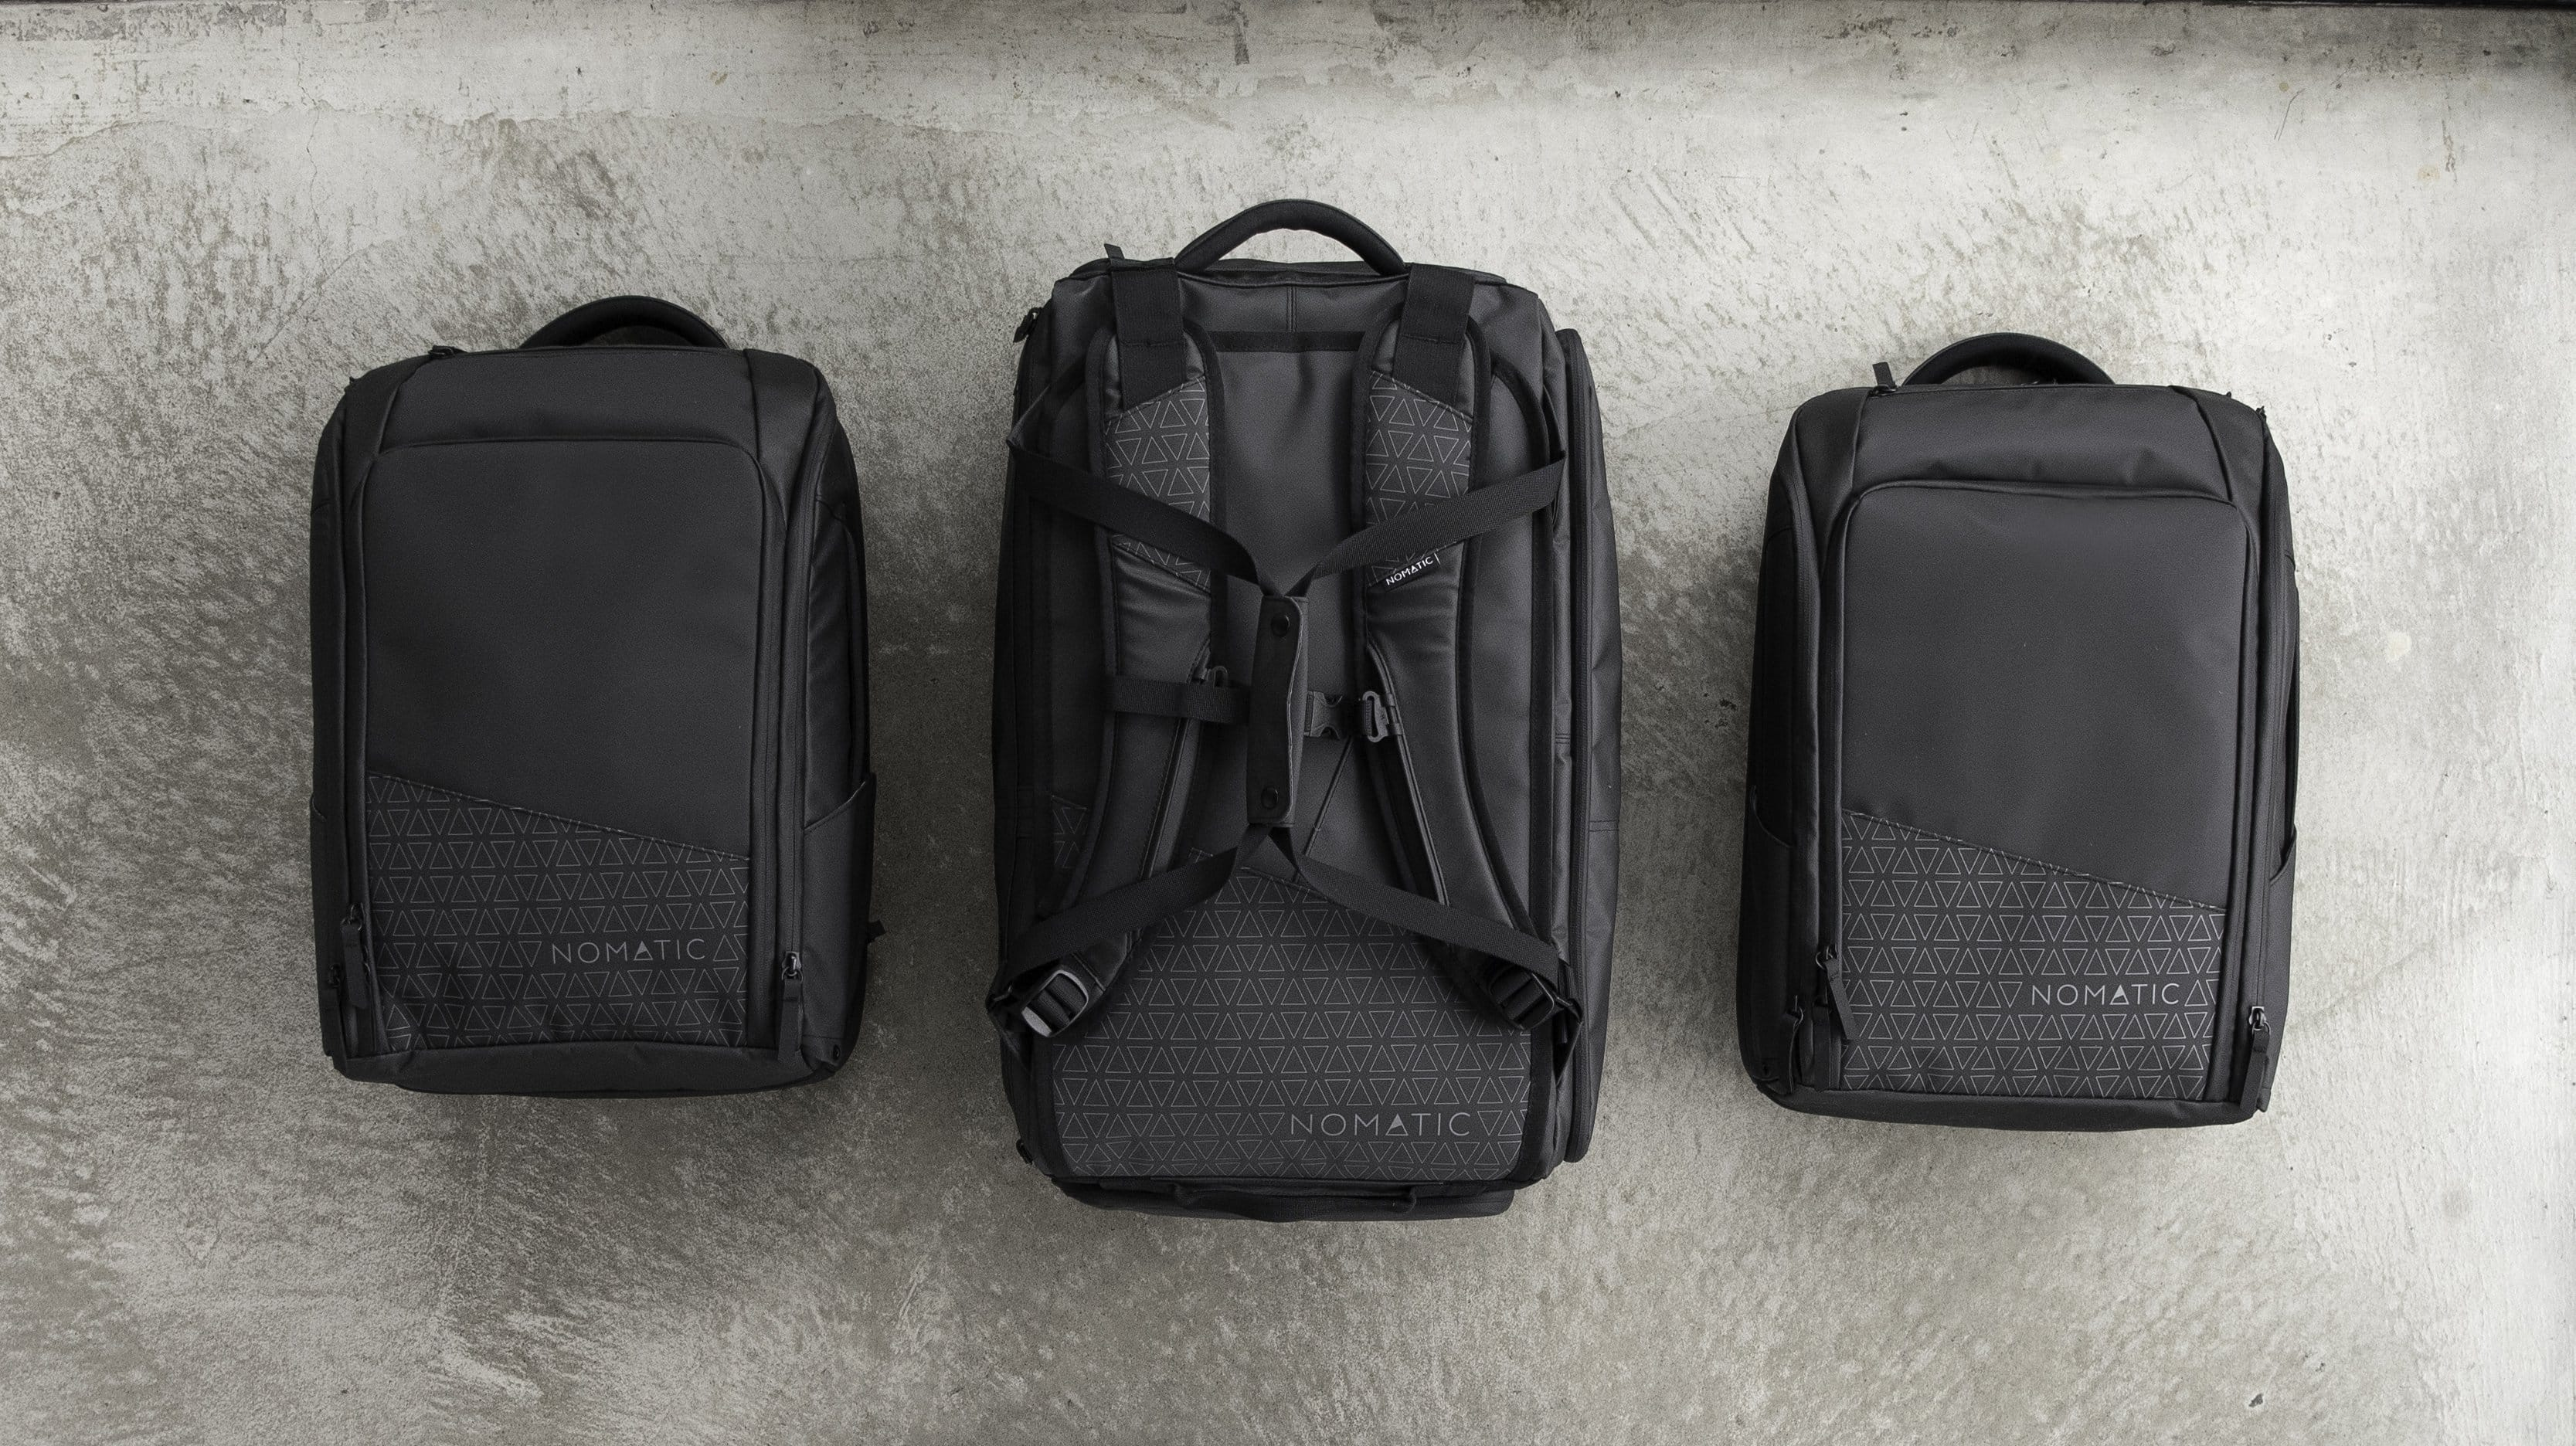 For a limited time get 15% off Noamtic's Travel Bags.- coupon code: TB15